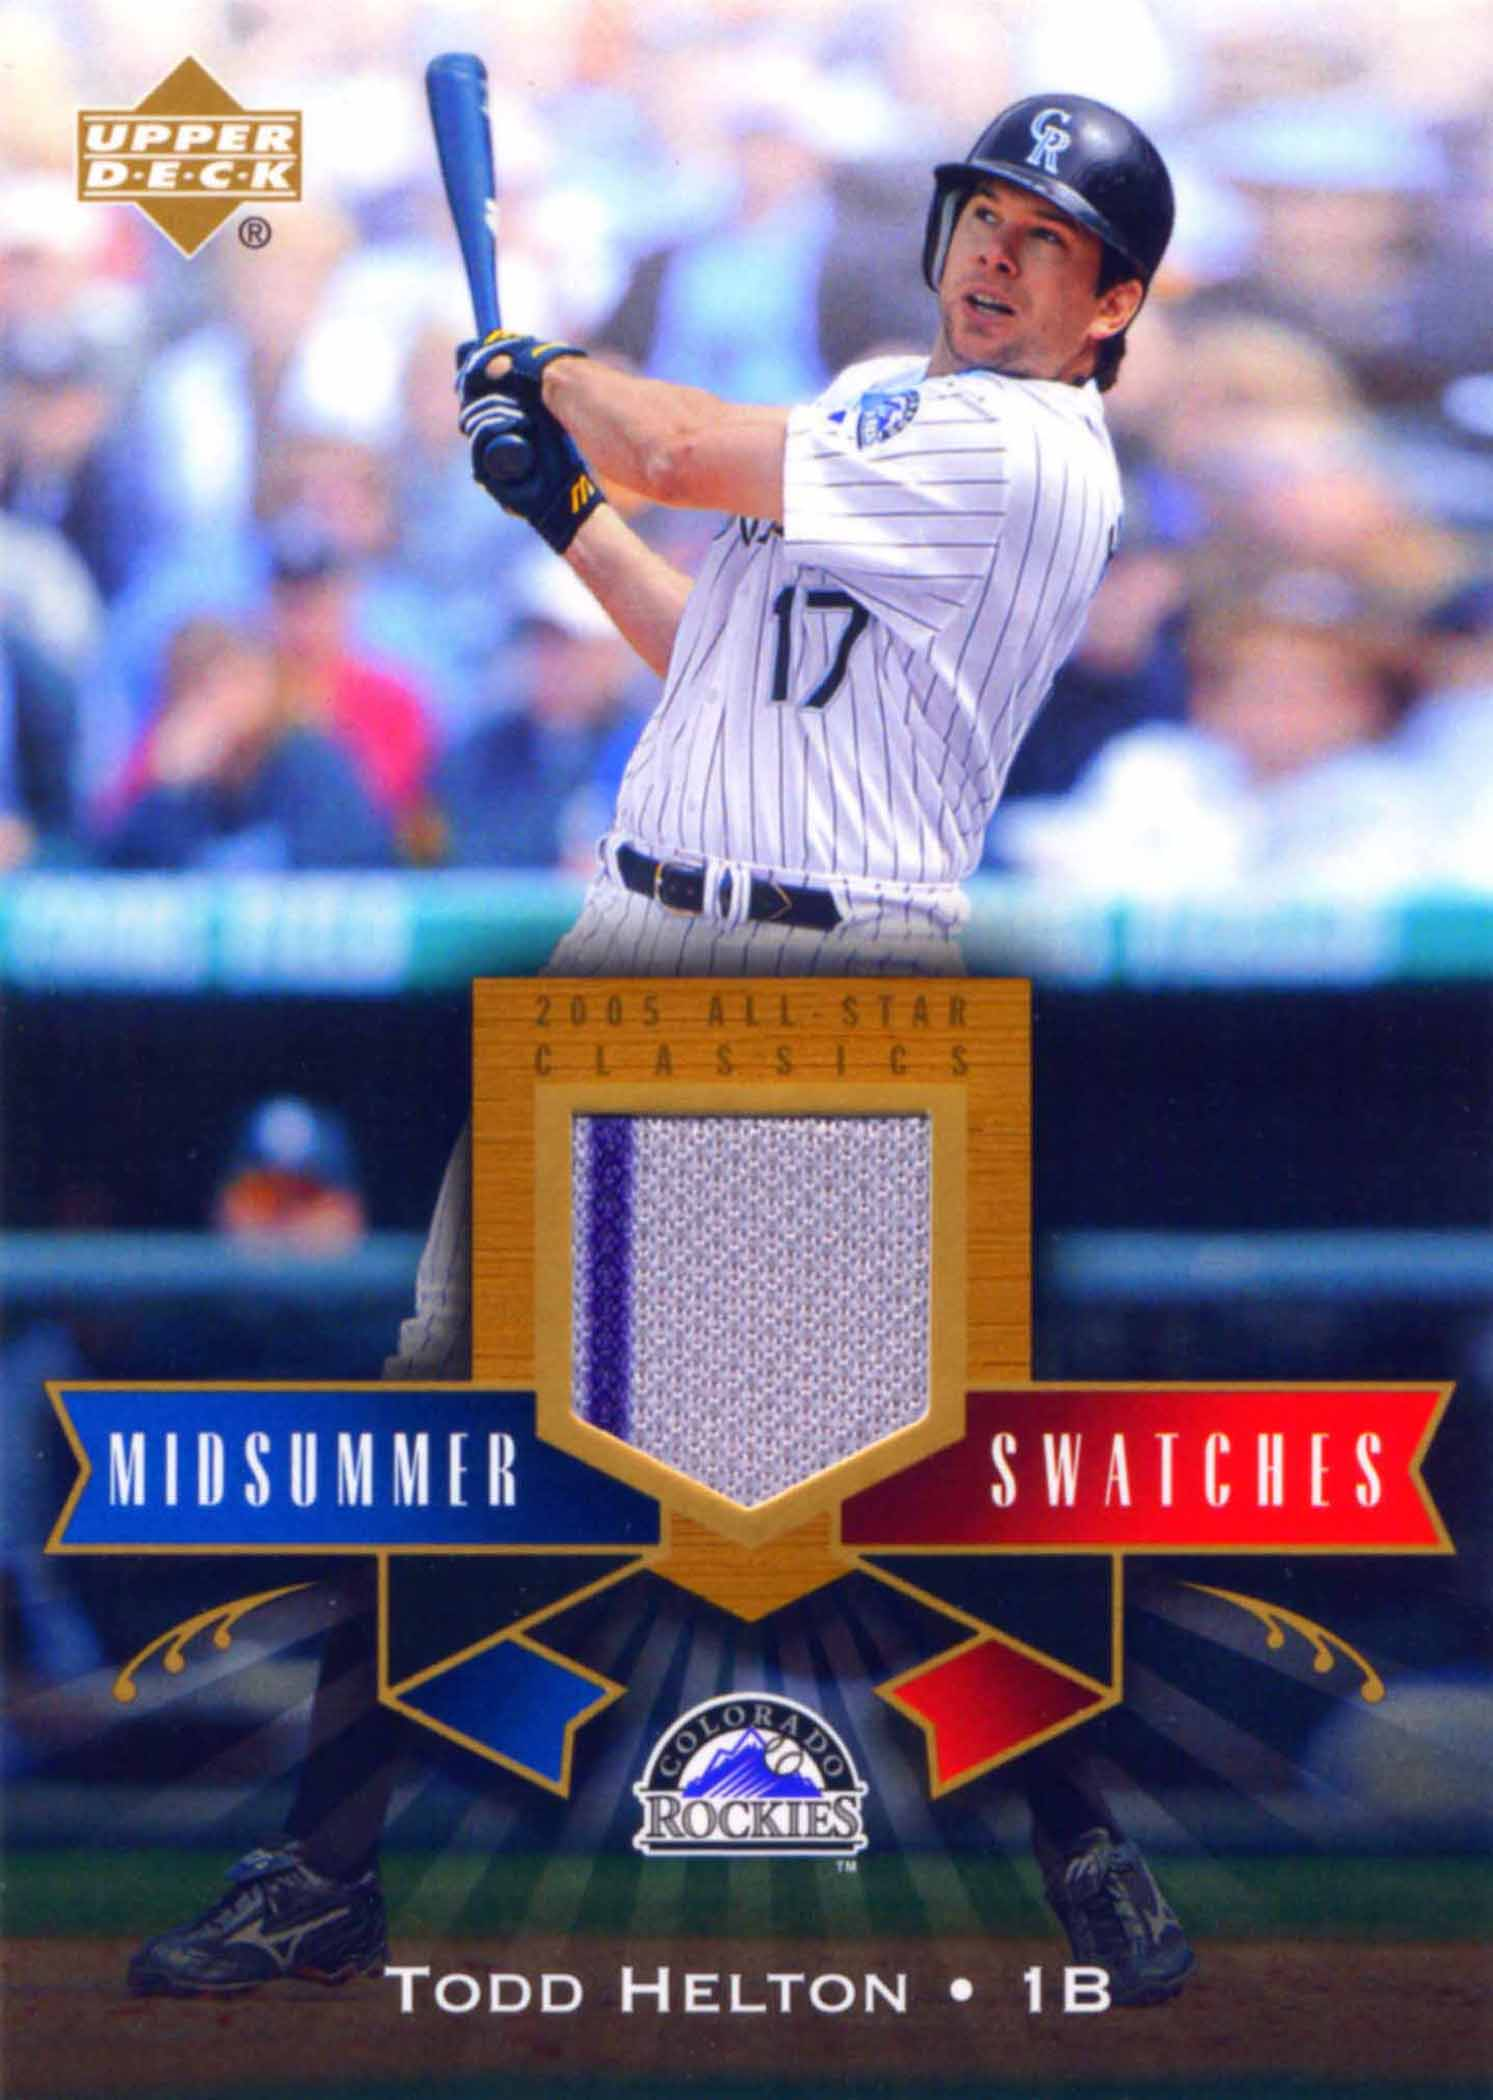 2005 UD All-Star Classics Midsummer Swatches Jersey